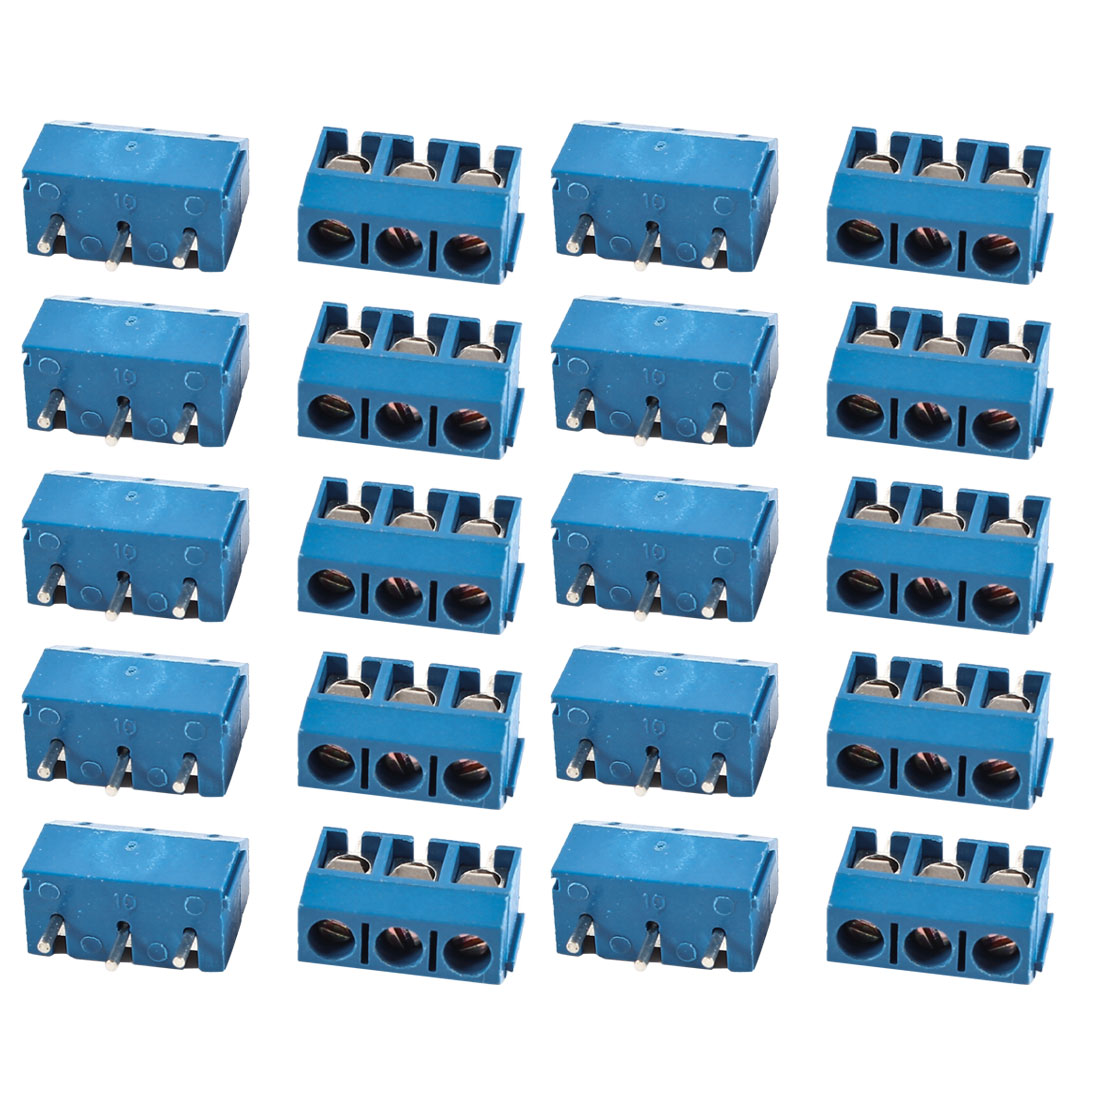 20 Pcs Blue KF301-3P 3 Position 5mm Pitch PCB Mount Screw Terminal Block Connectors 300V 16A